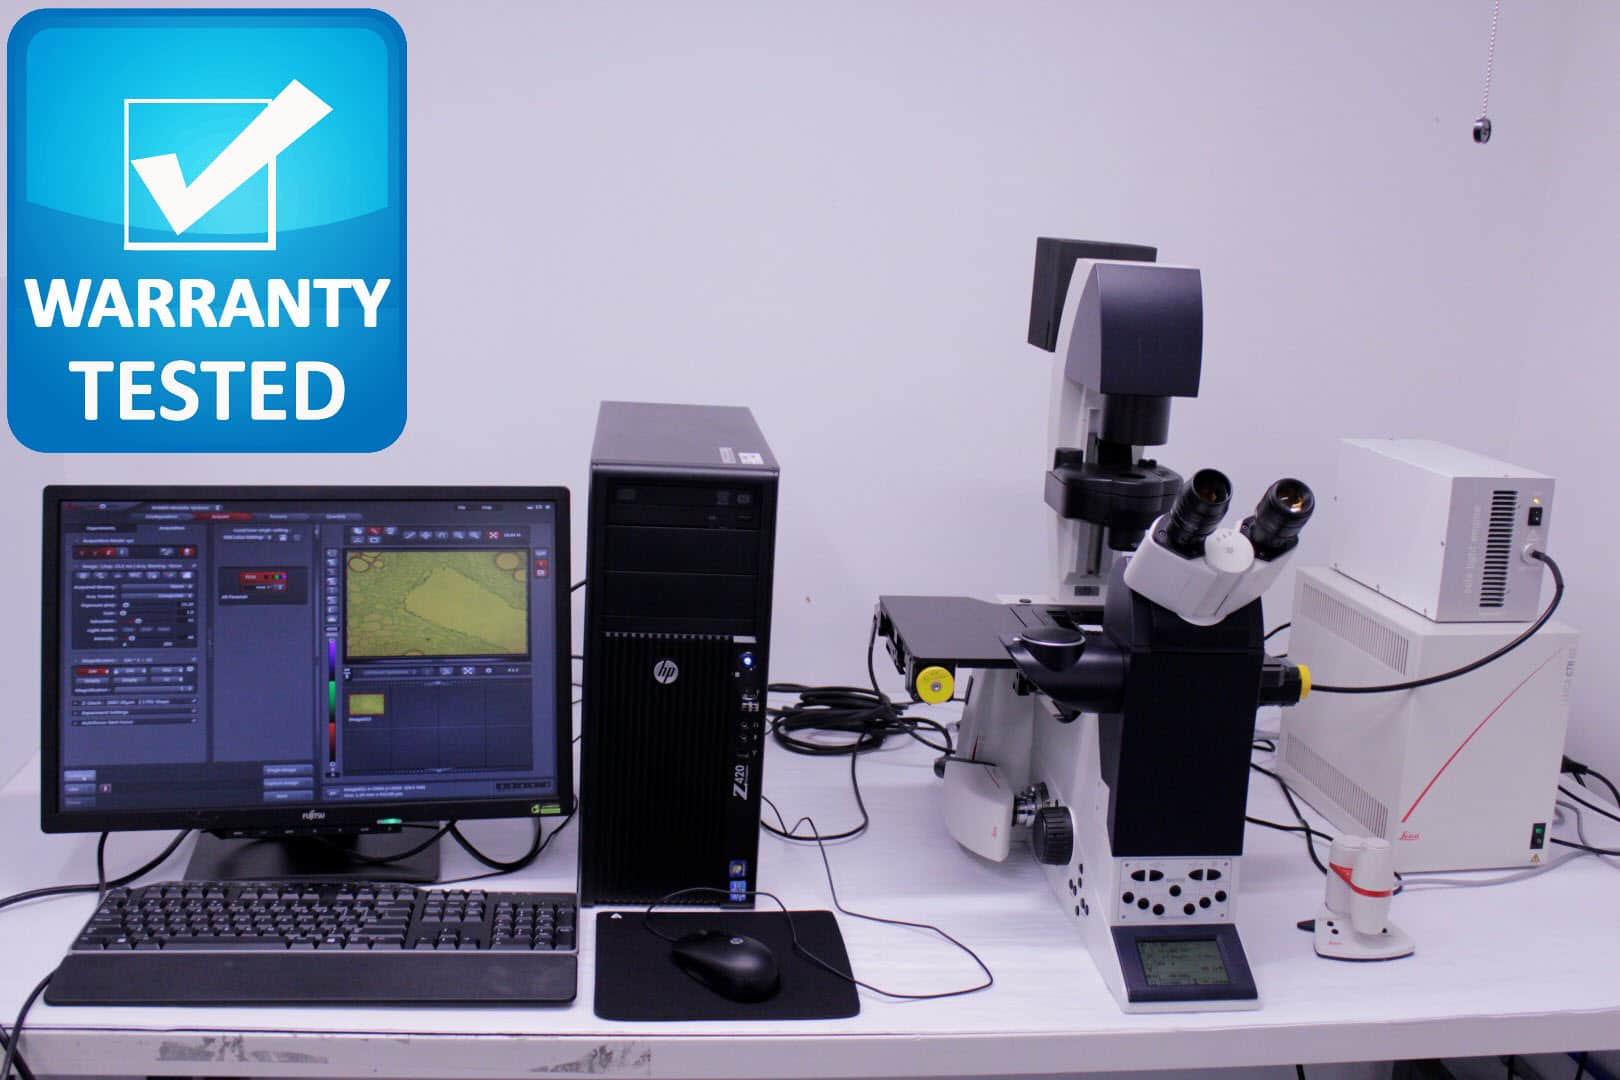 Leica DMI6000 B Inverted Motorized Microscope Pred DMi8 S